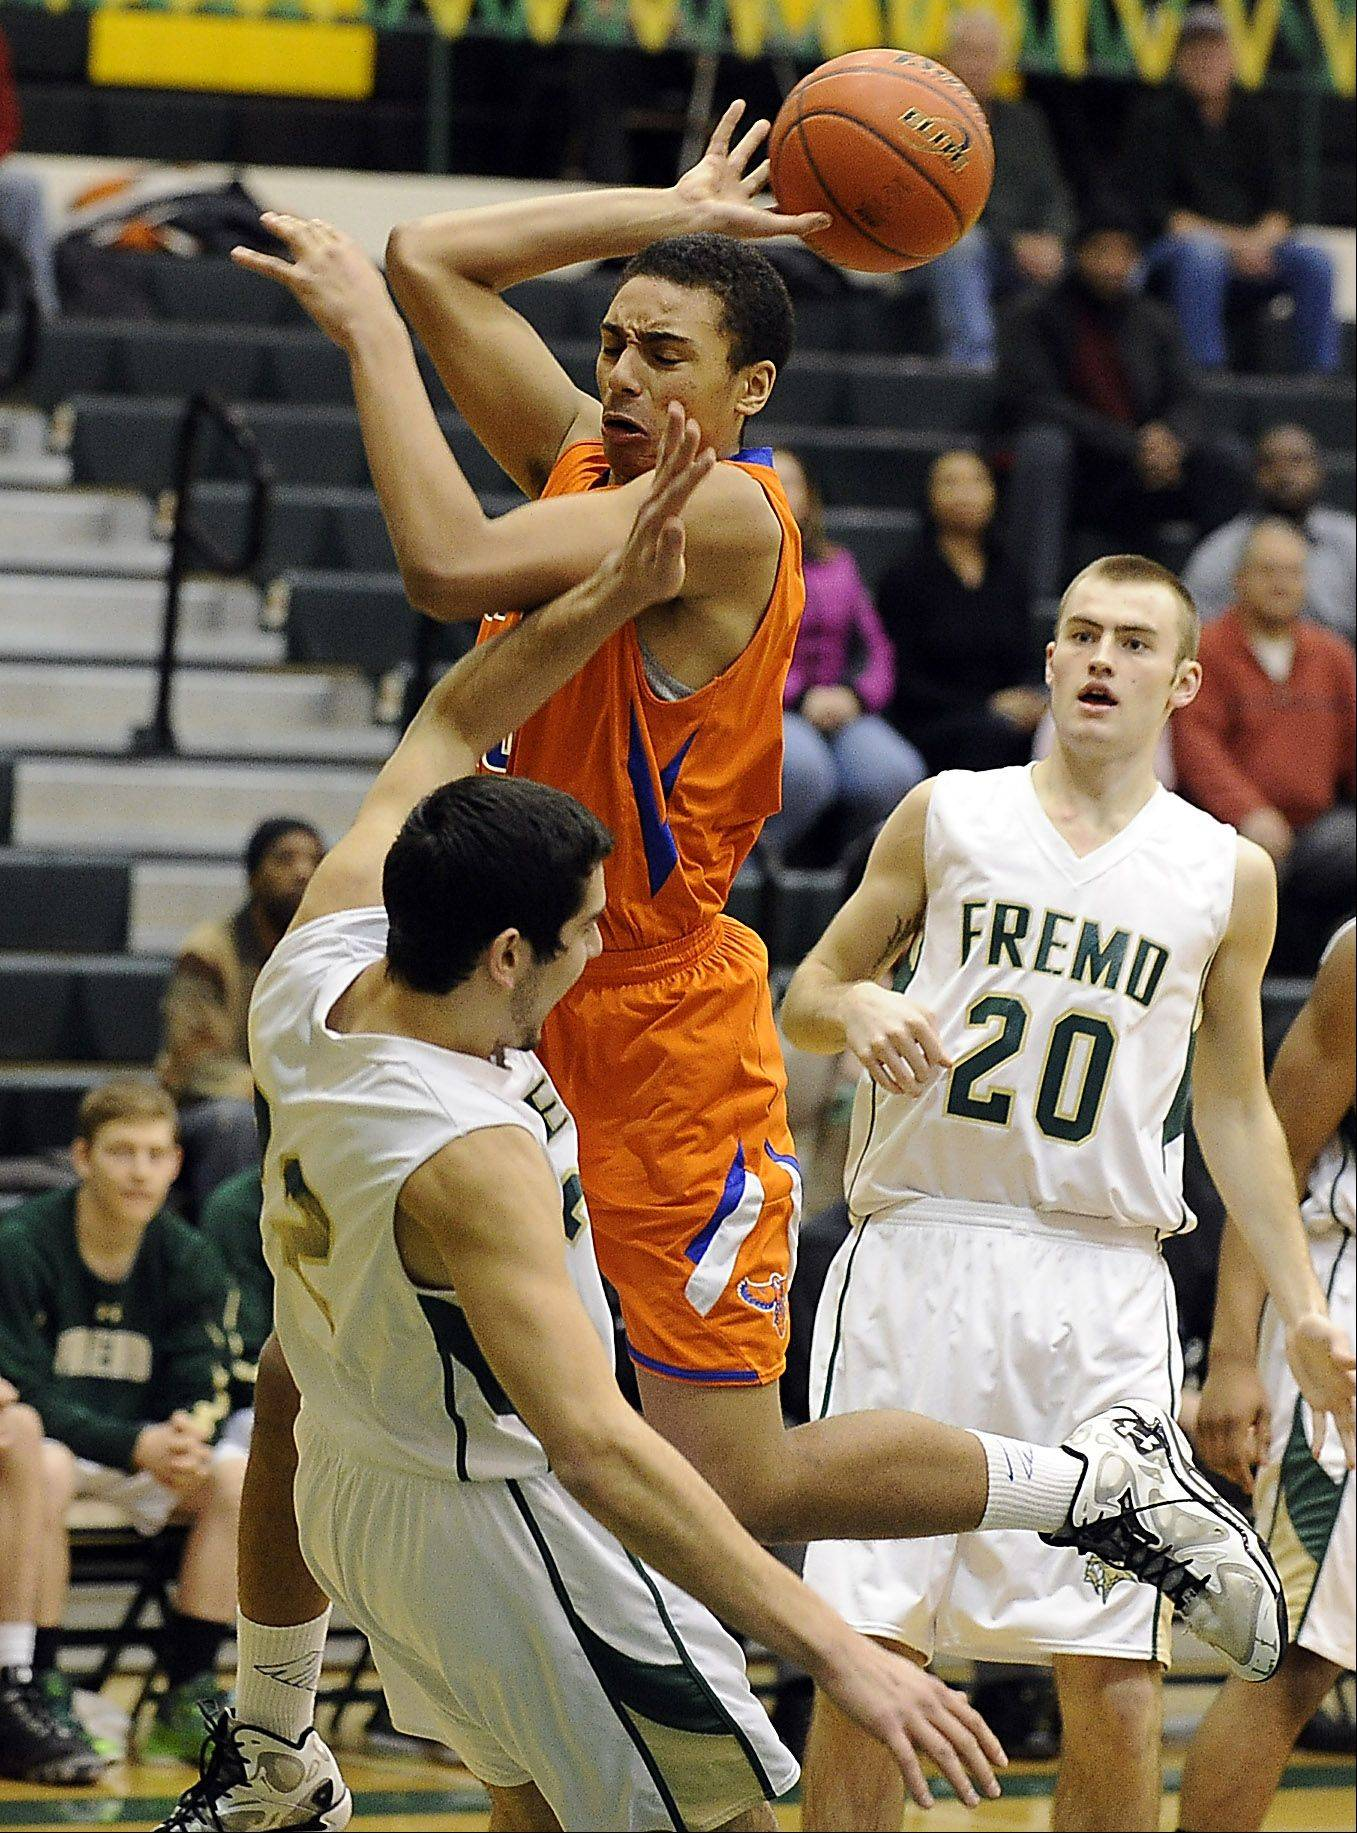 Hoffman Estates' Jordan Robinson loses control of the ball as Fremd's Matthew Ochoa defends during Friday's game.